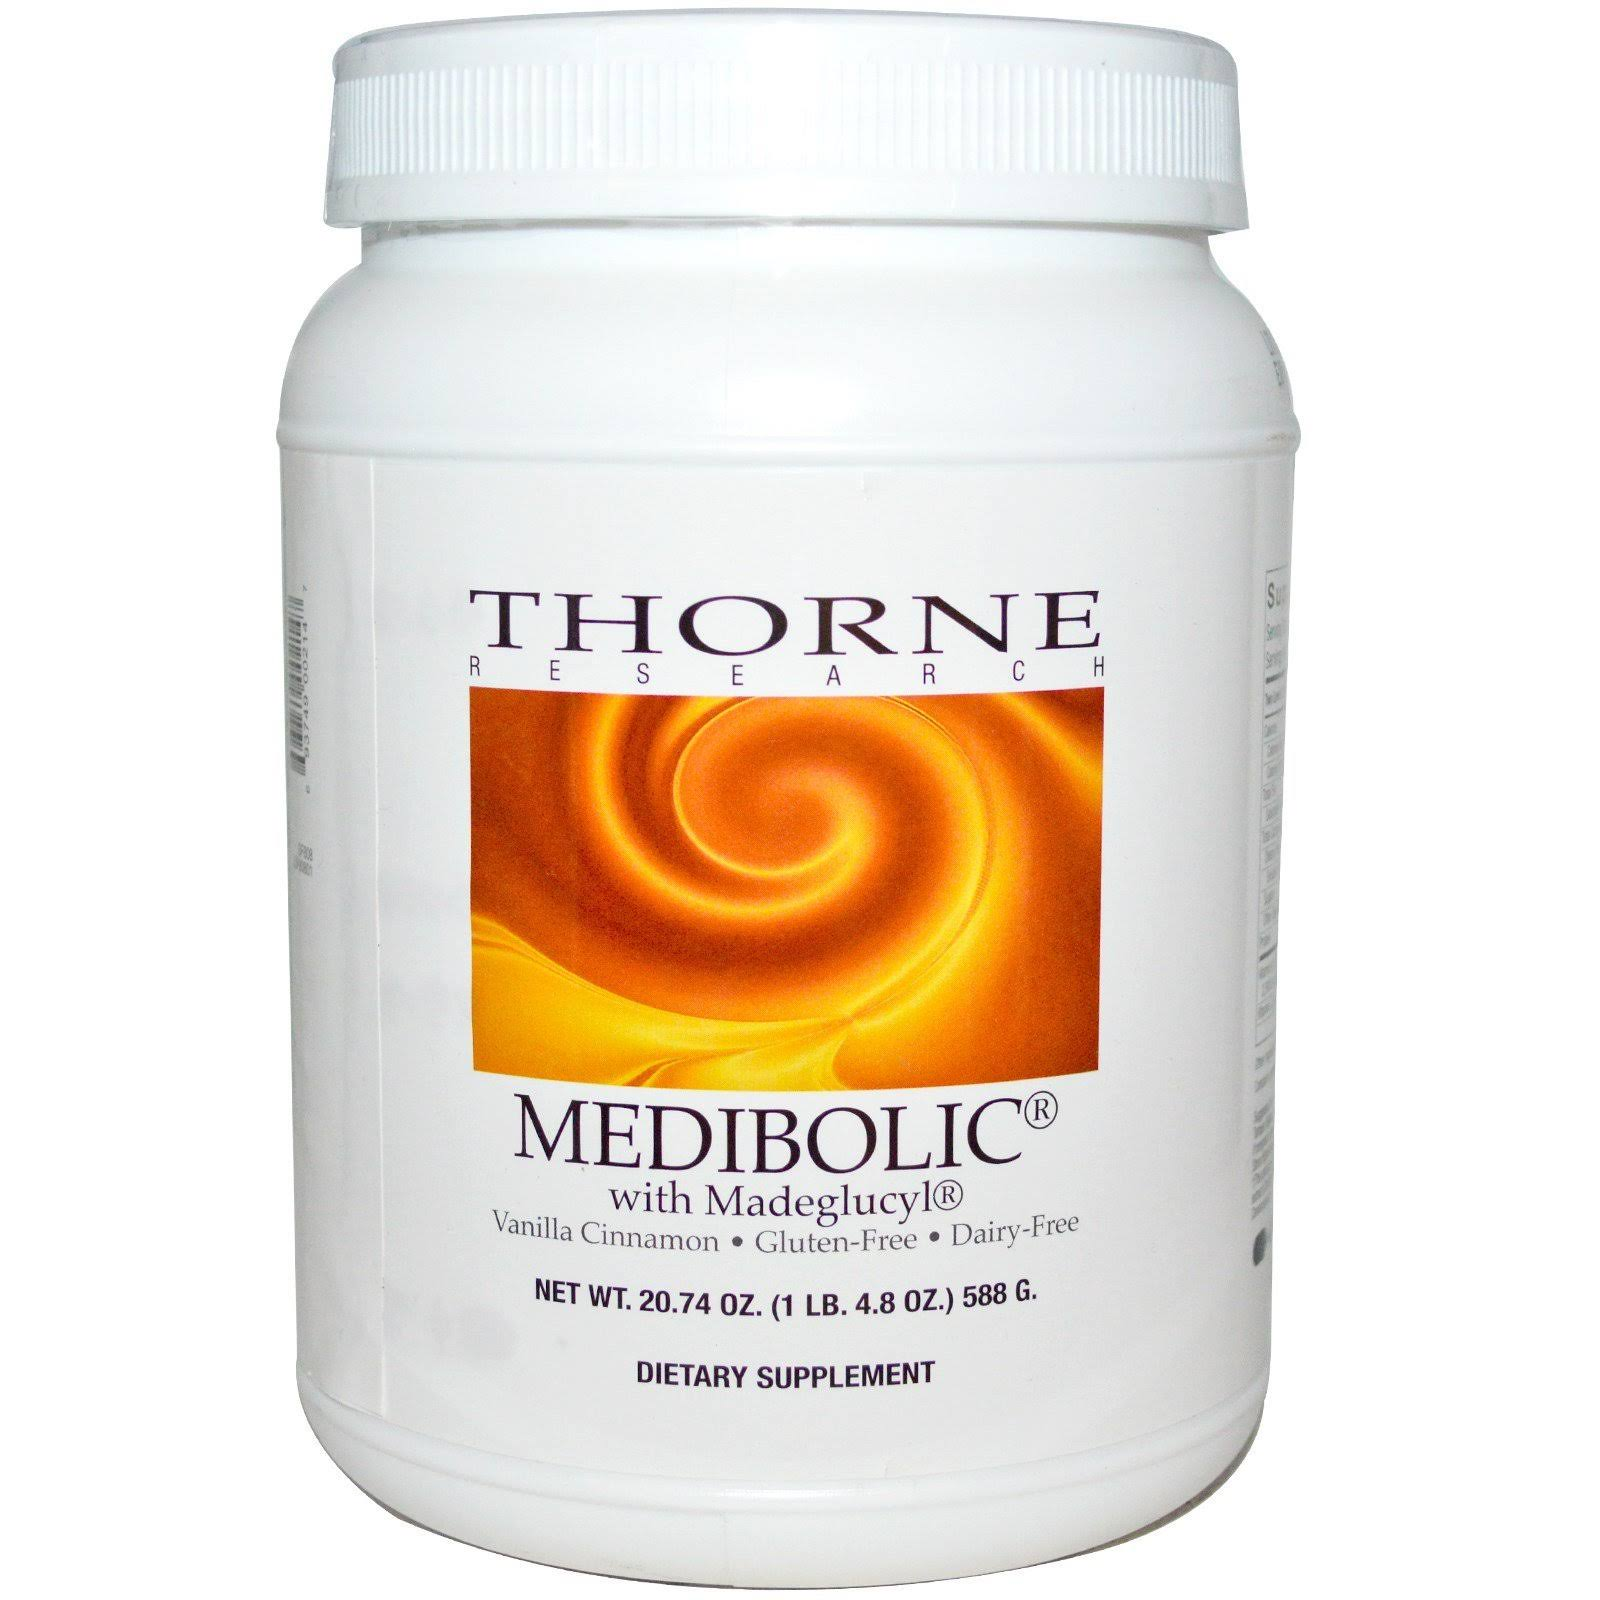 Thorne Research MediBolic Dietary Supplement - Vanilla Cinnamon, 20.74oz